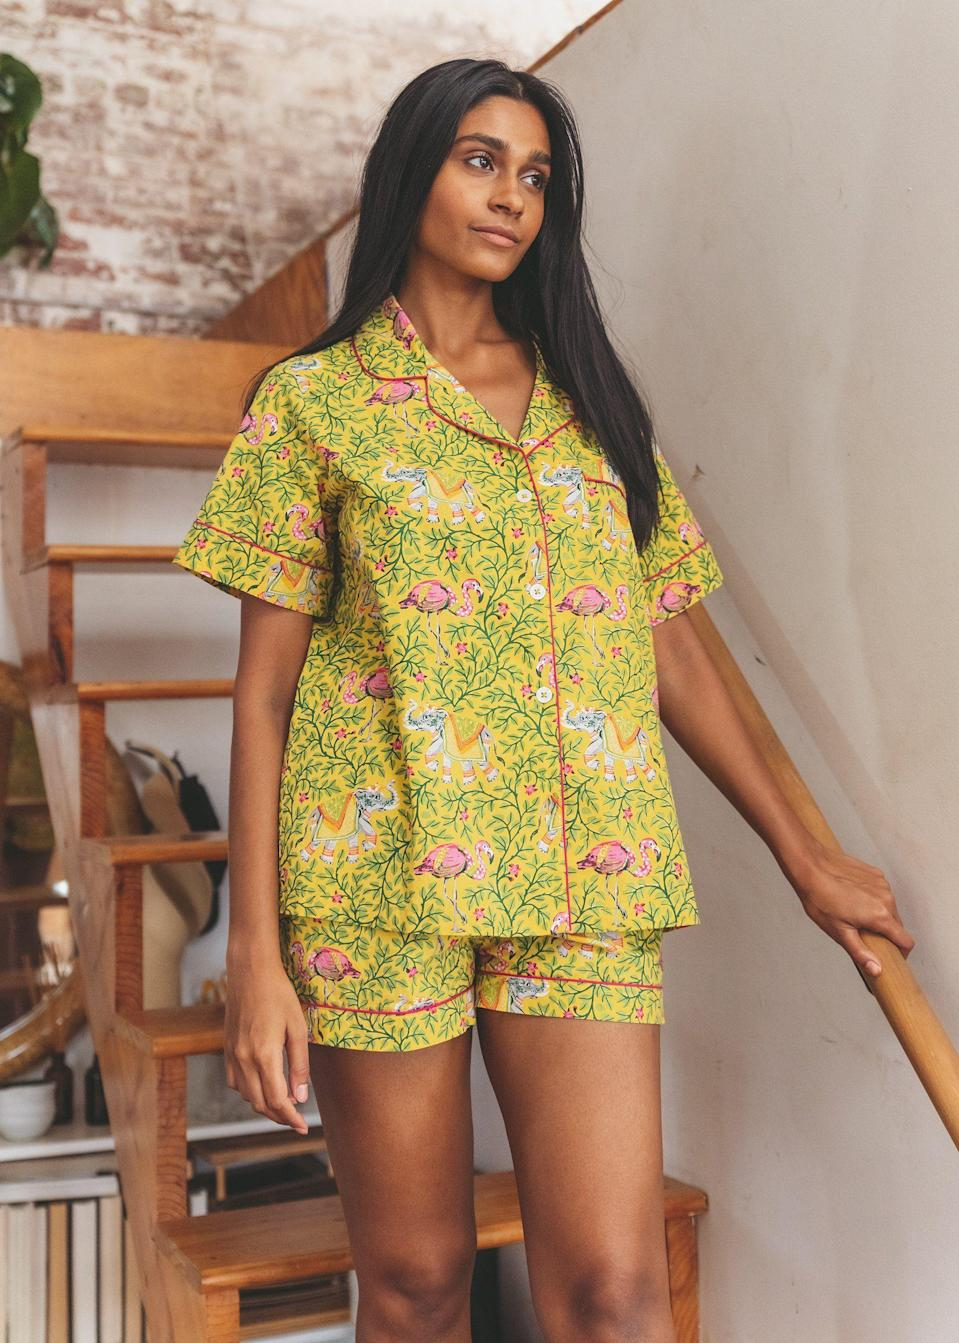 """<p><strong>Print Fresh</strong></p><p>printfresh.com</p><p><strong>$118.00</strong></p><p><a href=""""https://printfresh.com/products/flamenco-short-sleep-set-dandelion#image-18009529352326"""" rel=""""nofollow noopener"""" target=""""_blank"""" data-ylk=""""slk:Shop Now"""" class=""""link rapid-noclick-resp"""">Shop Now</a></p><p>Available in sizes XXS-4X, these colorful pajamas are sure to put a smile on any stepmom's face.</p>"""